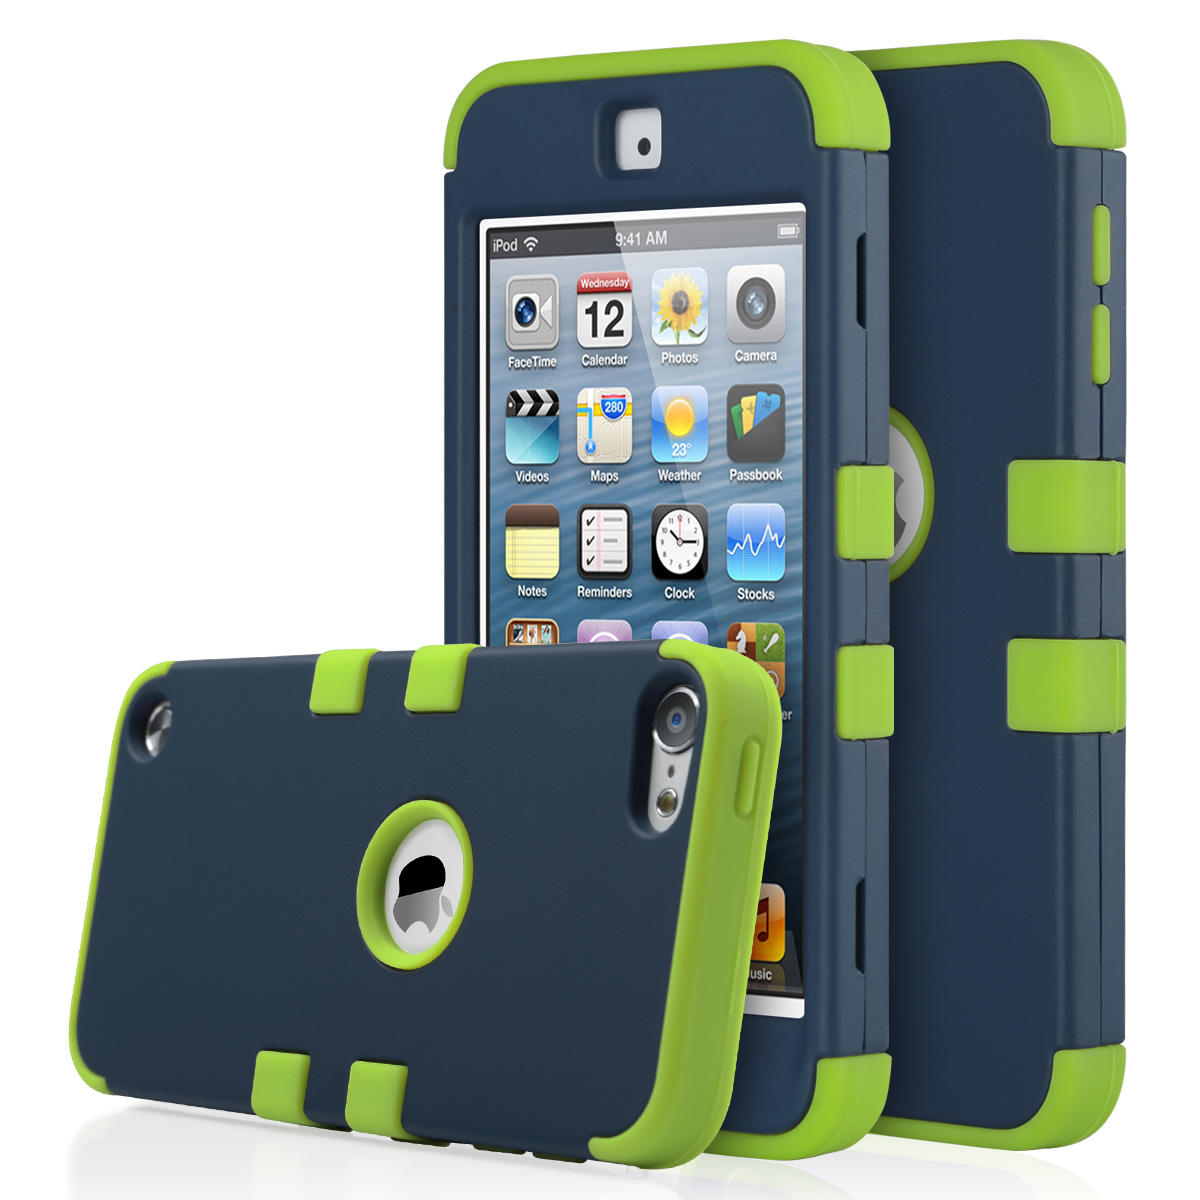 c4bc590da4 iPod Touch 6 Case iPod Touch 5 Case ULAK 5th 6 Touch iPod Case Hybrid Hard  Pattern with Silicon Case Cover for Apple iPod Touch 6 5th Generation ...